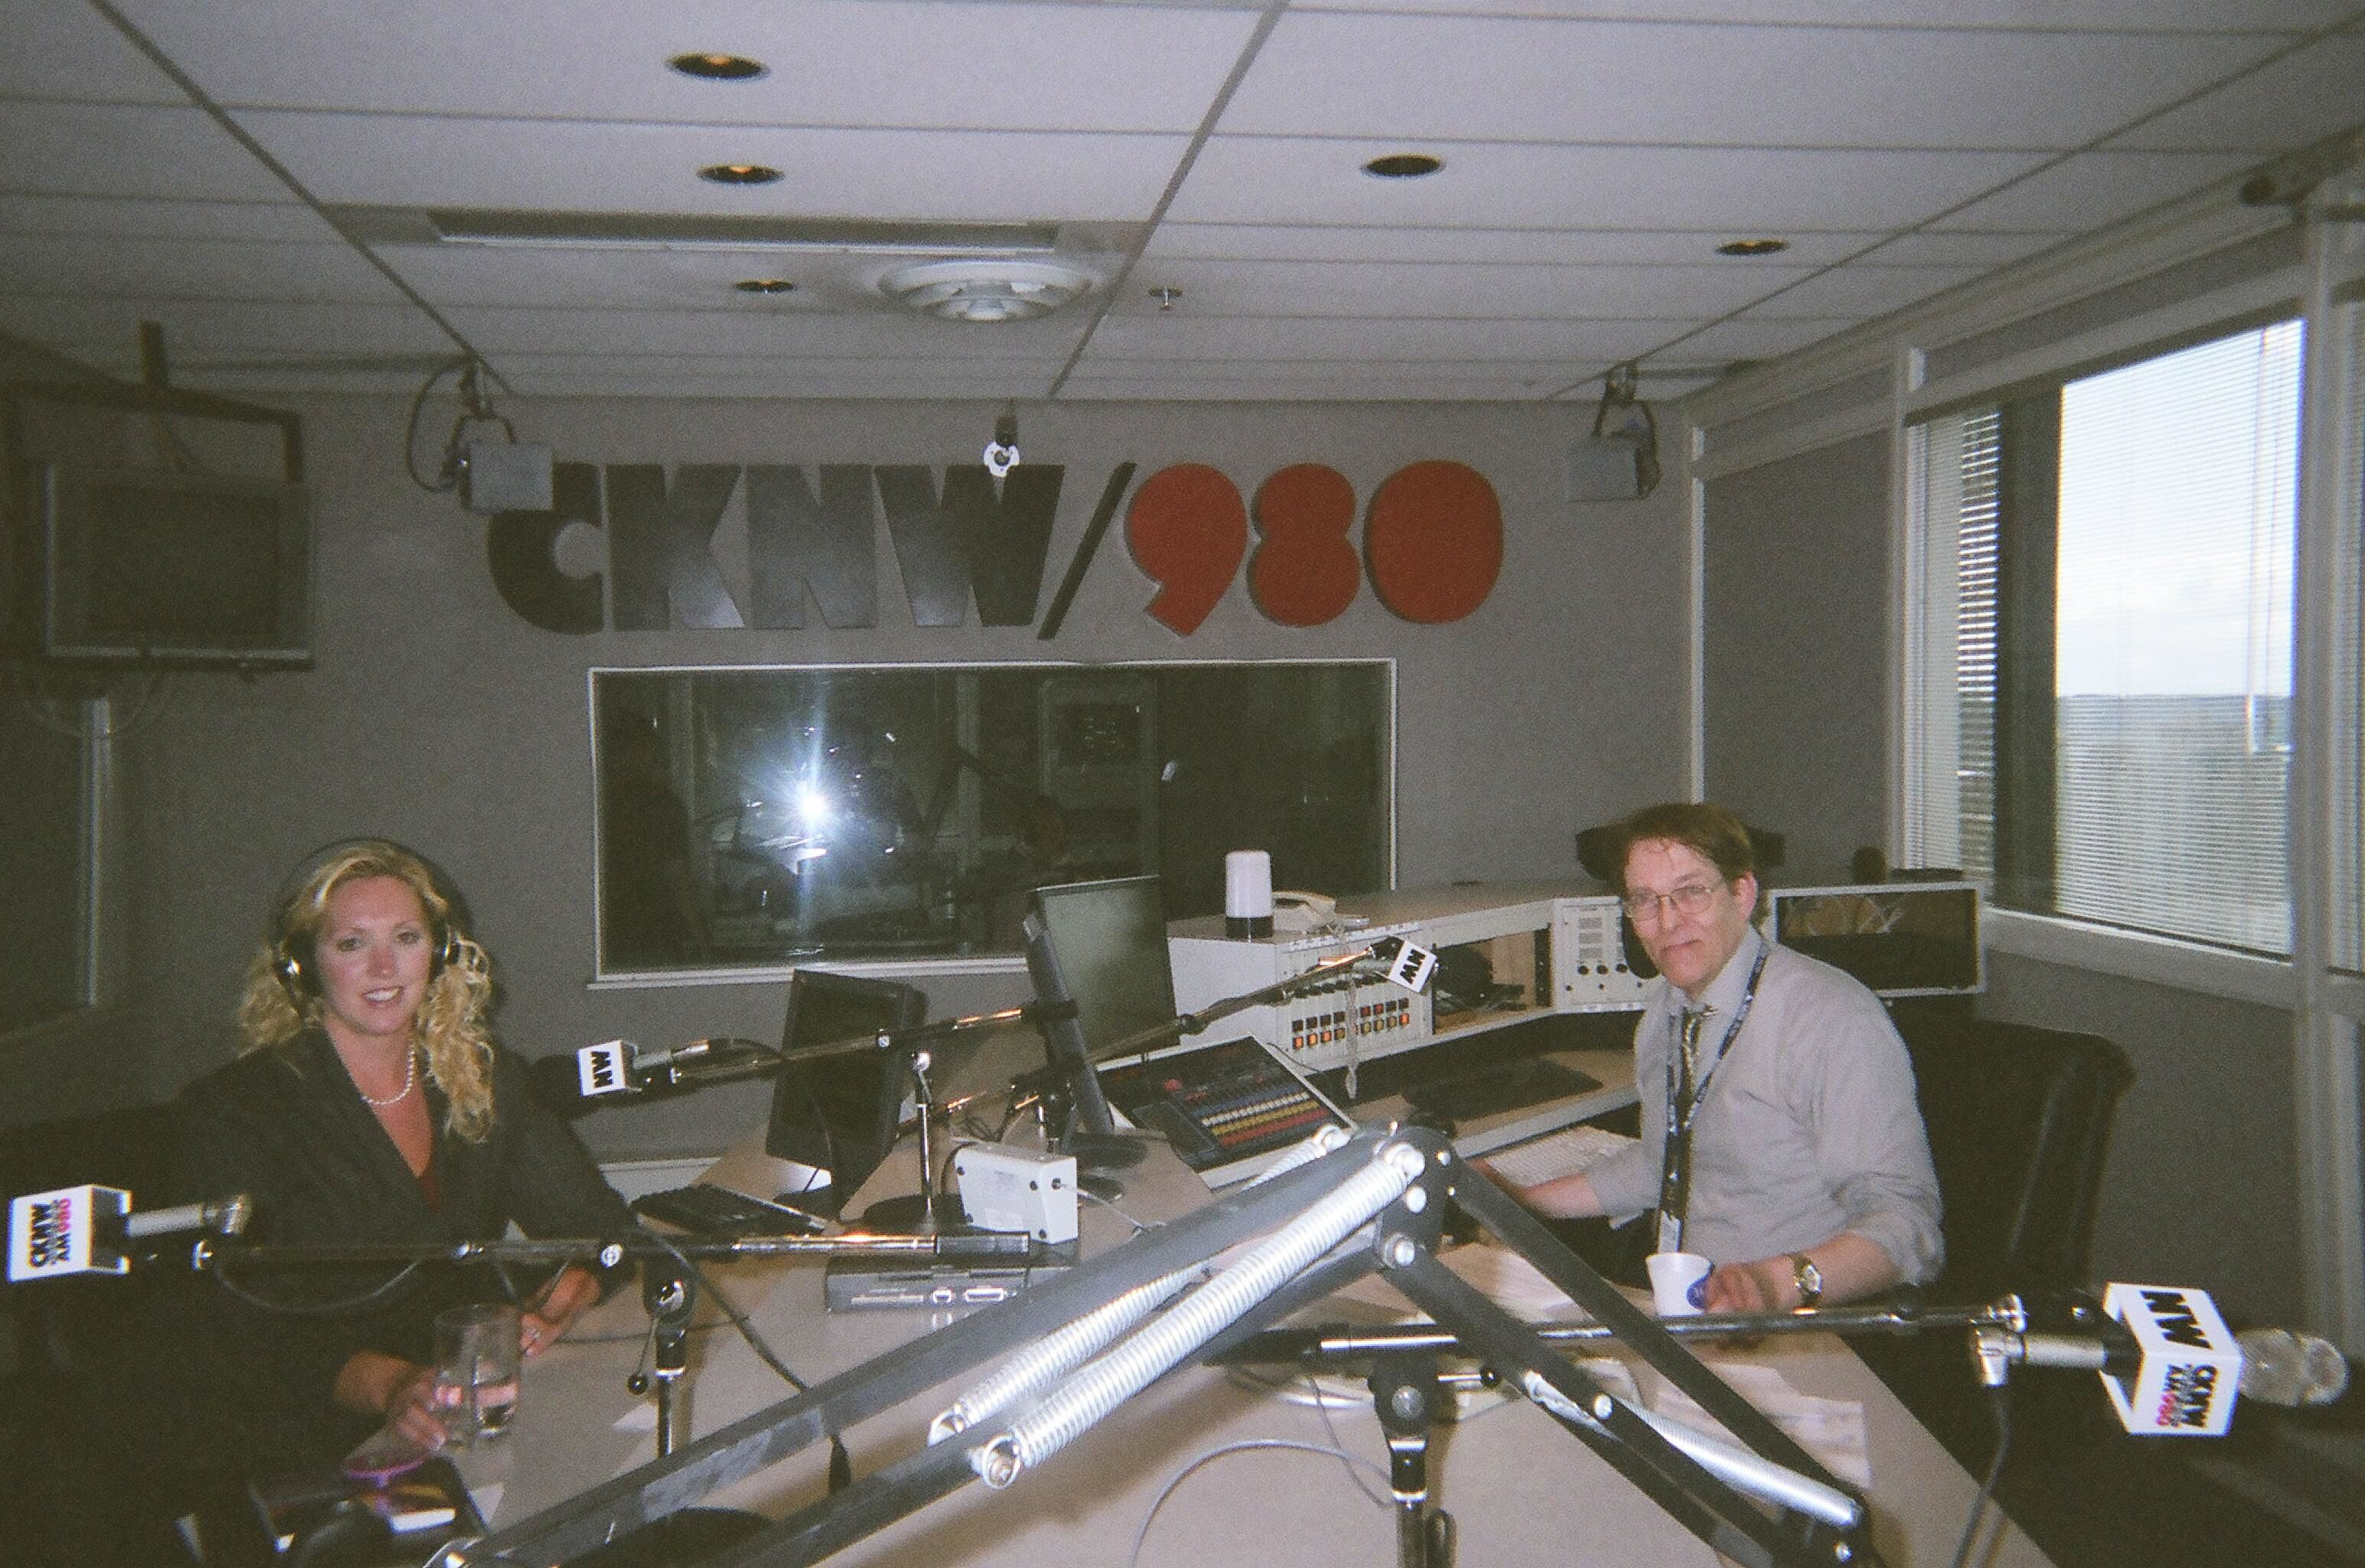 Laila Yuile and CKNW personality Tom Jefferies